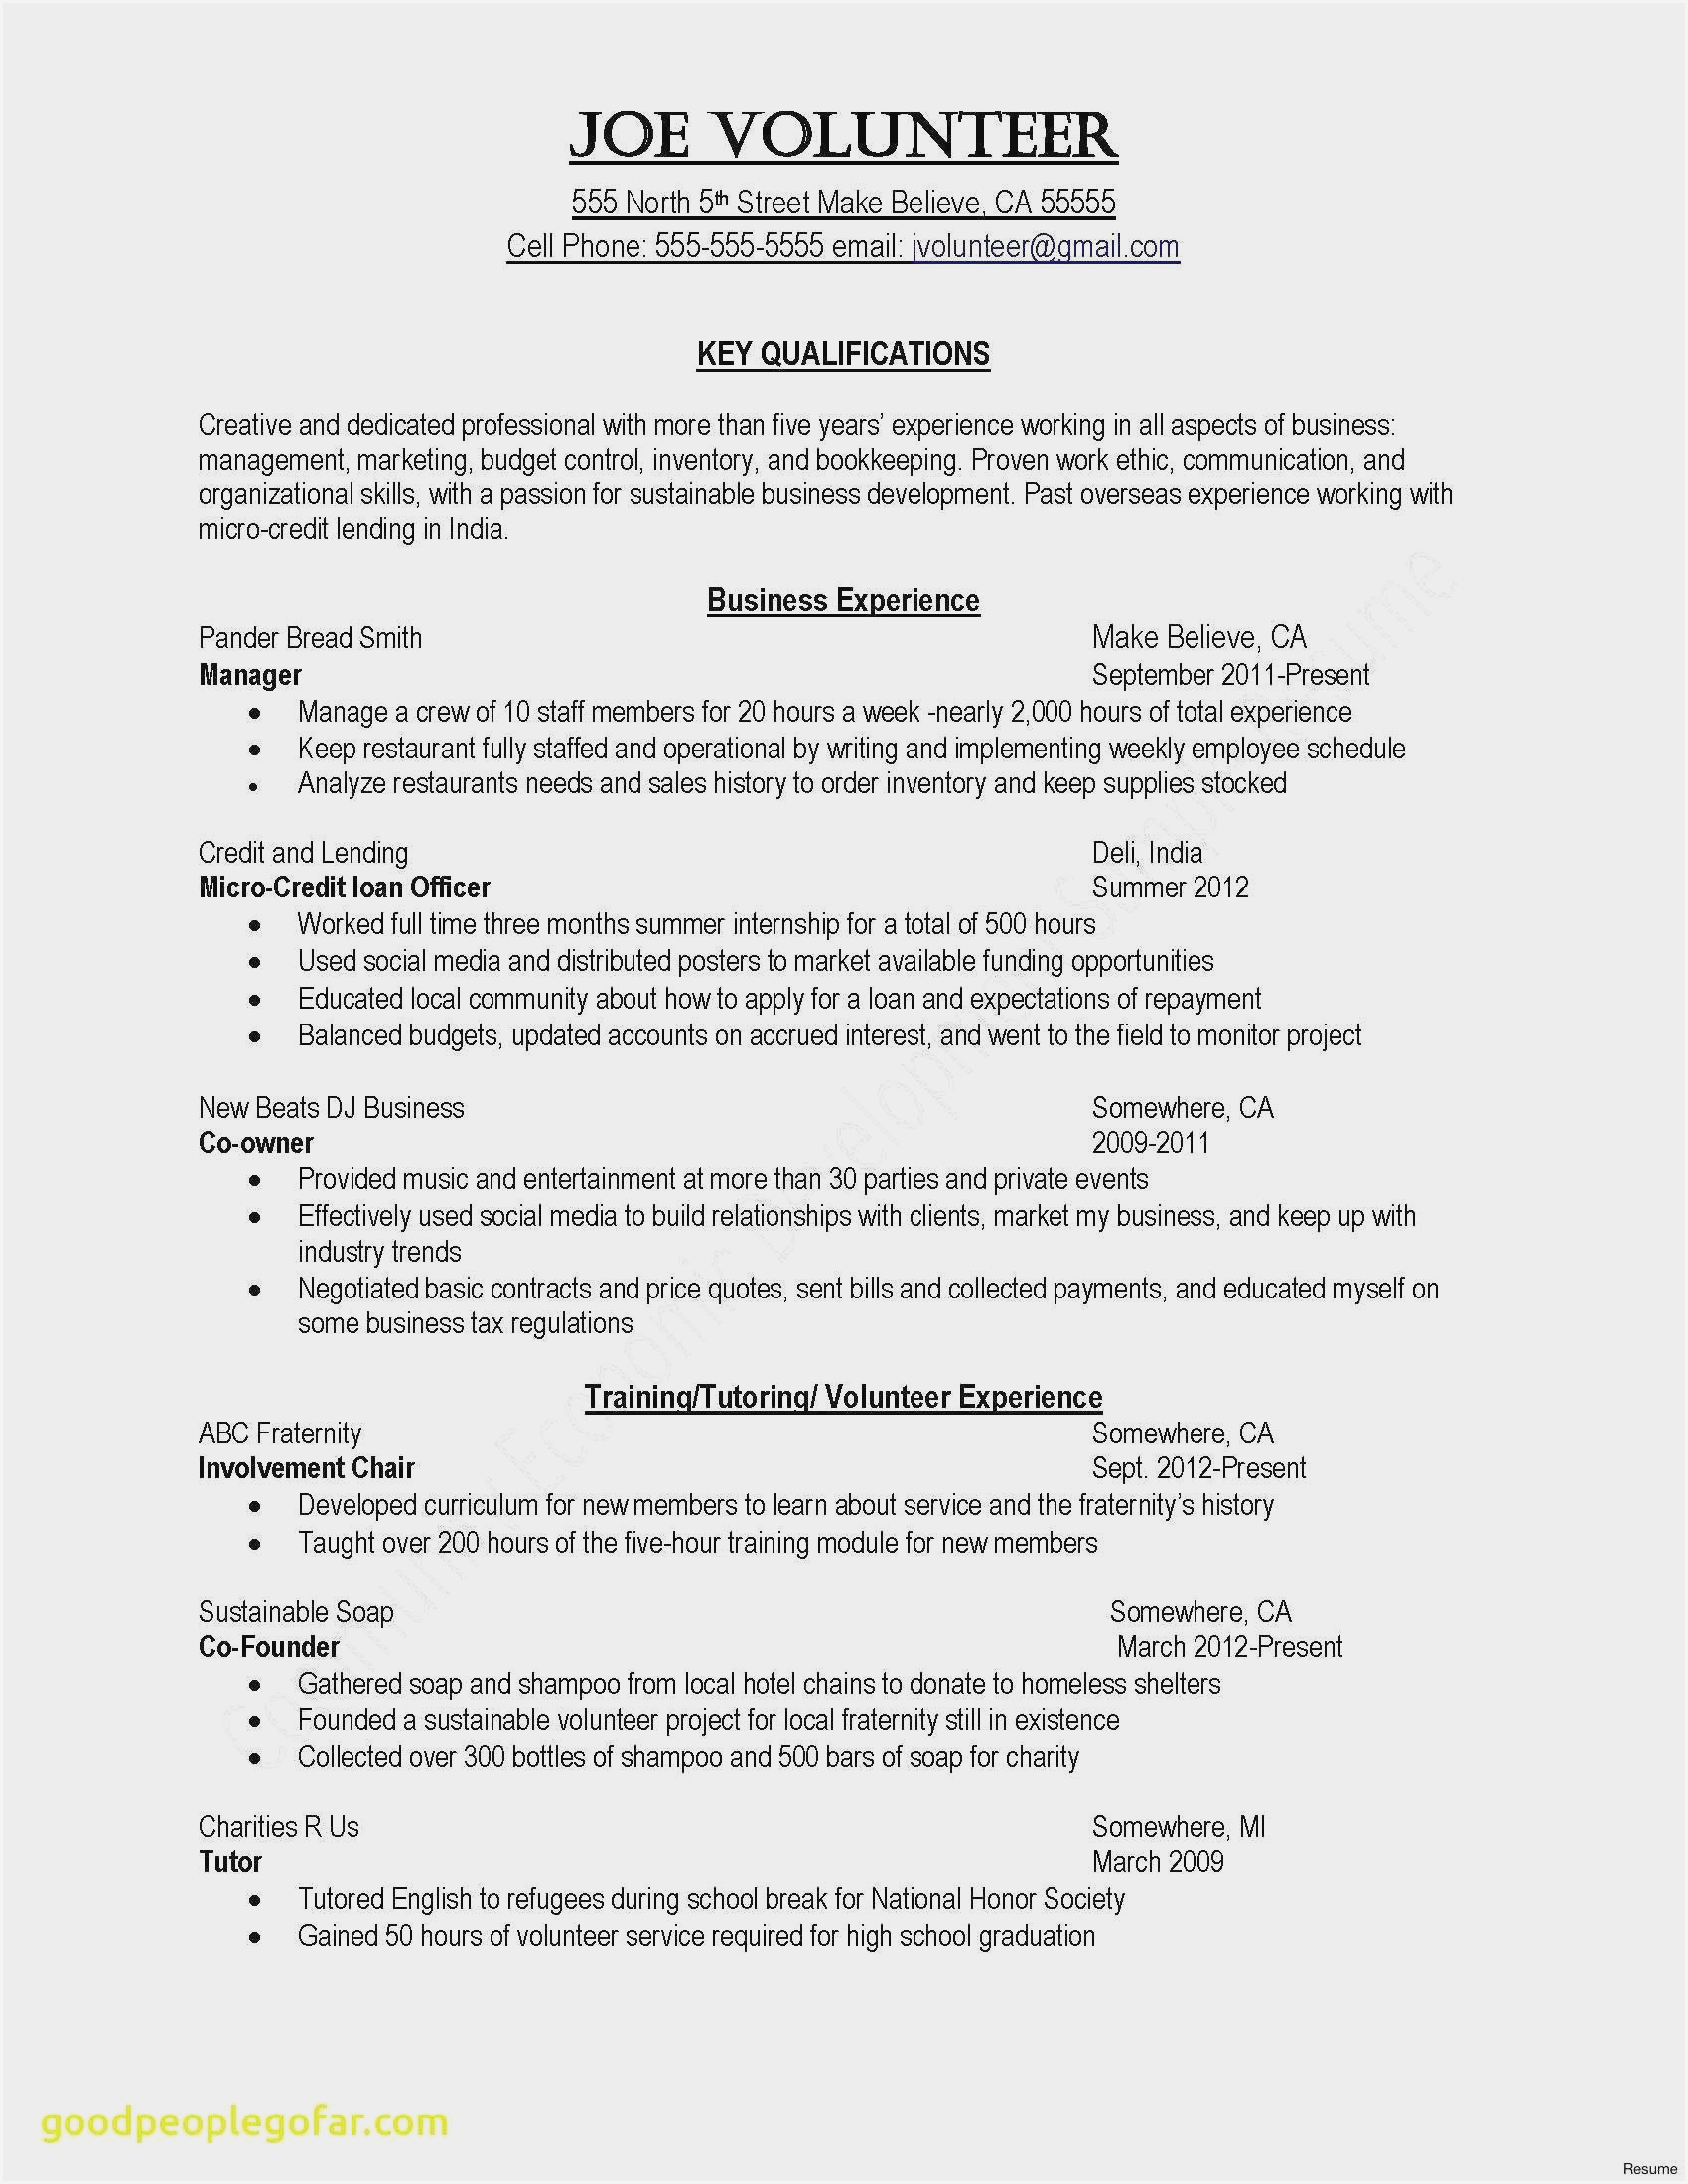 college graduate resume template sample high school for student application brain text Resume High School Graduate Resume For College